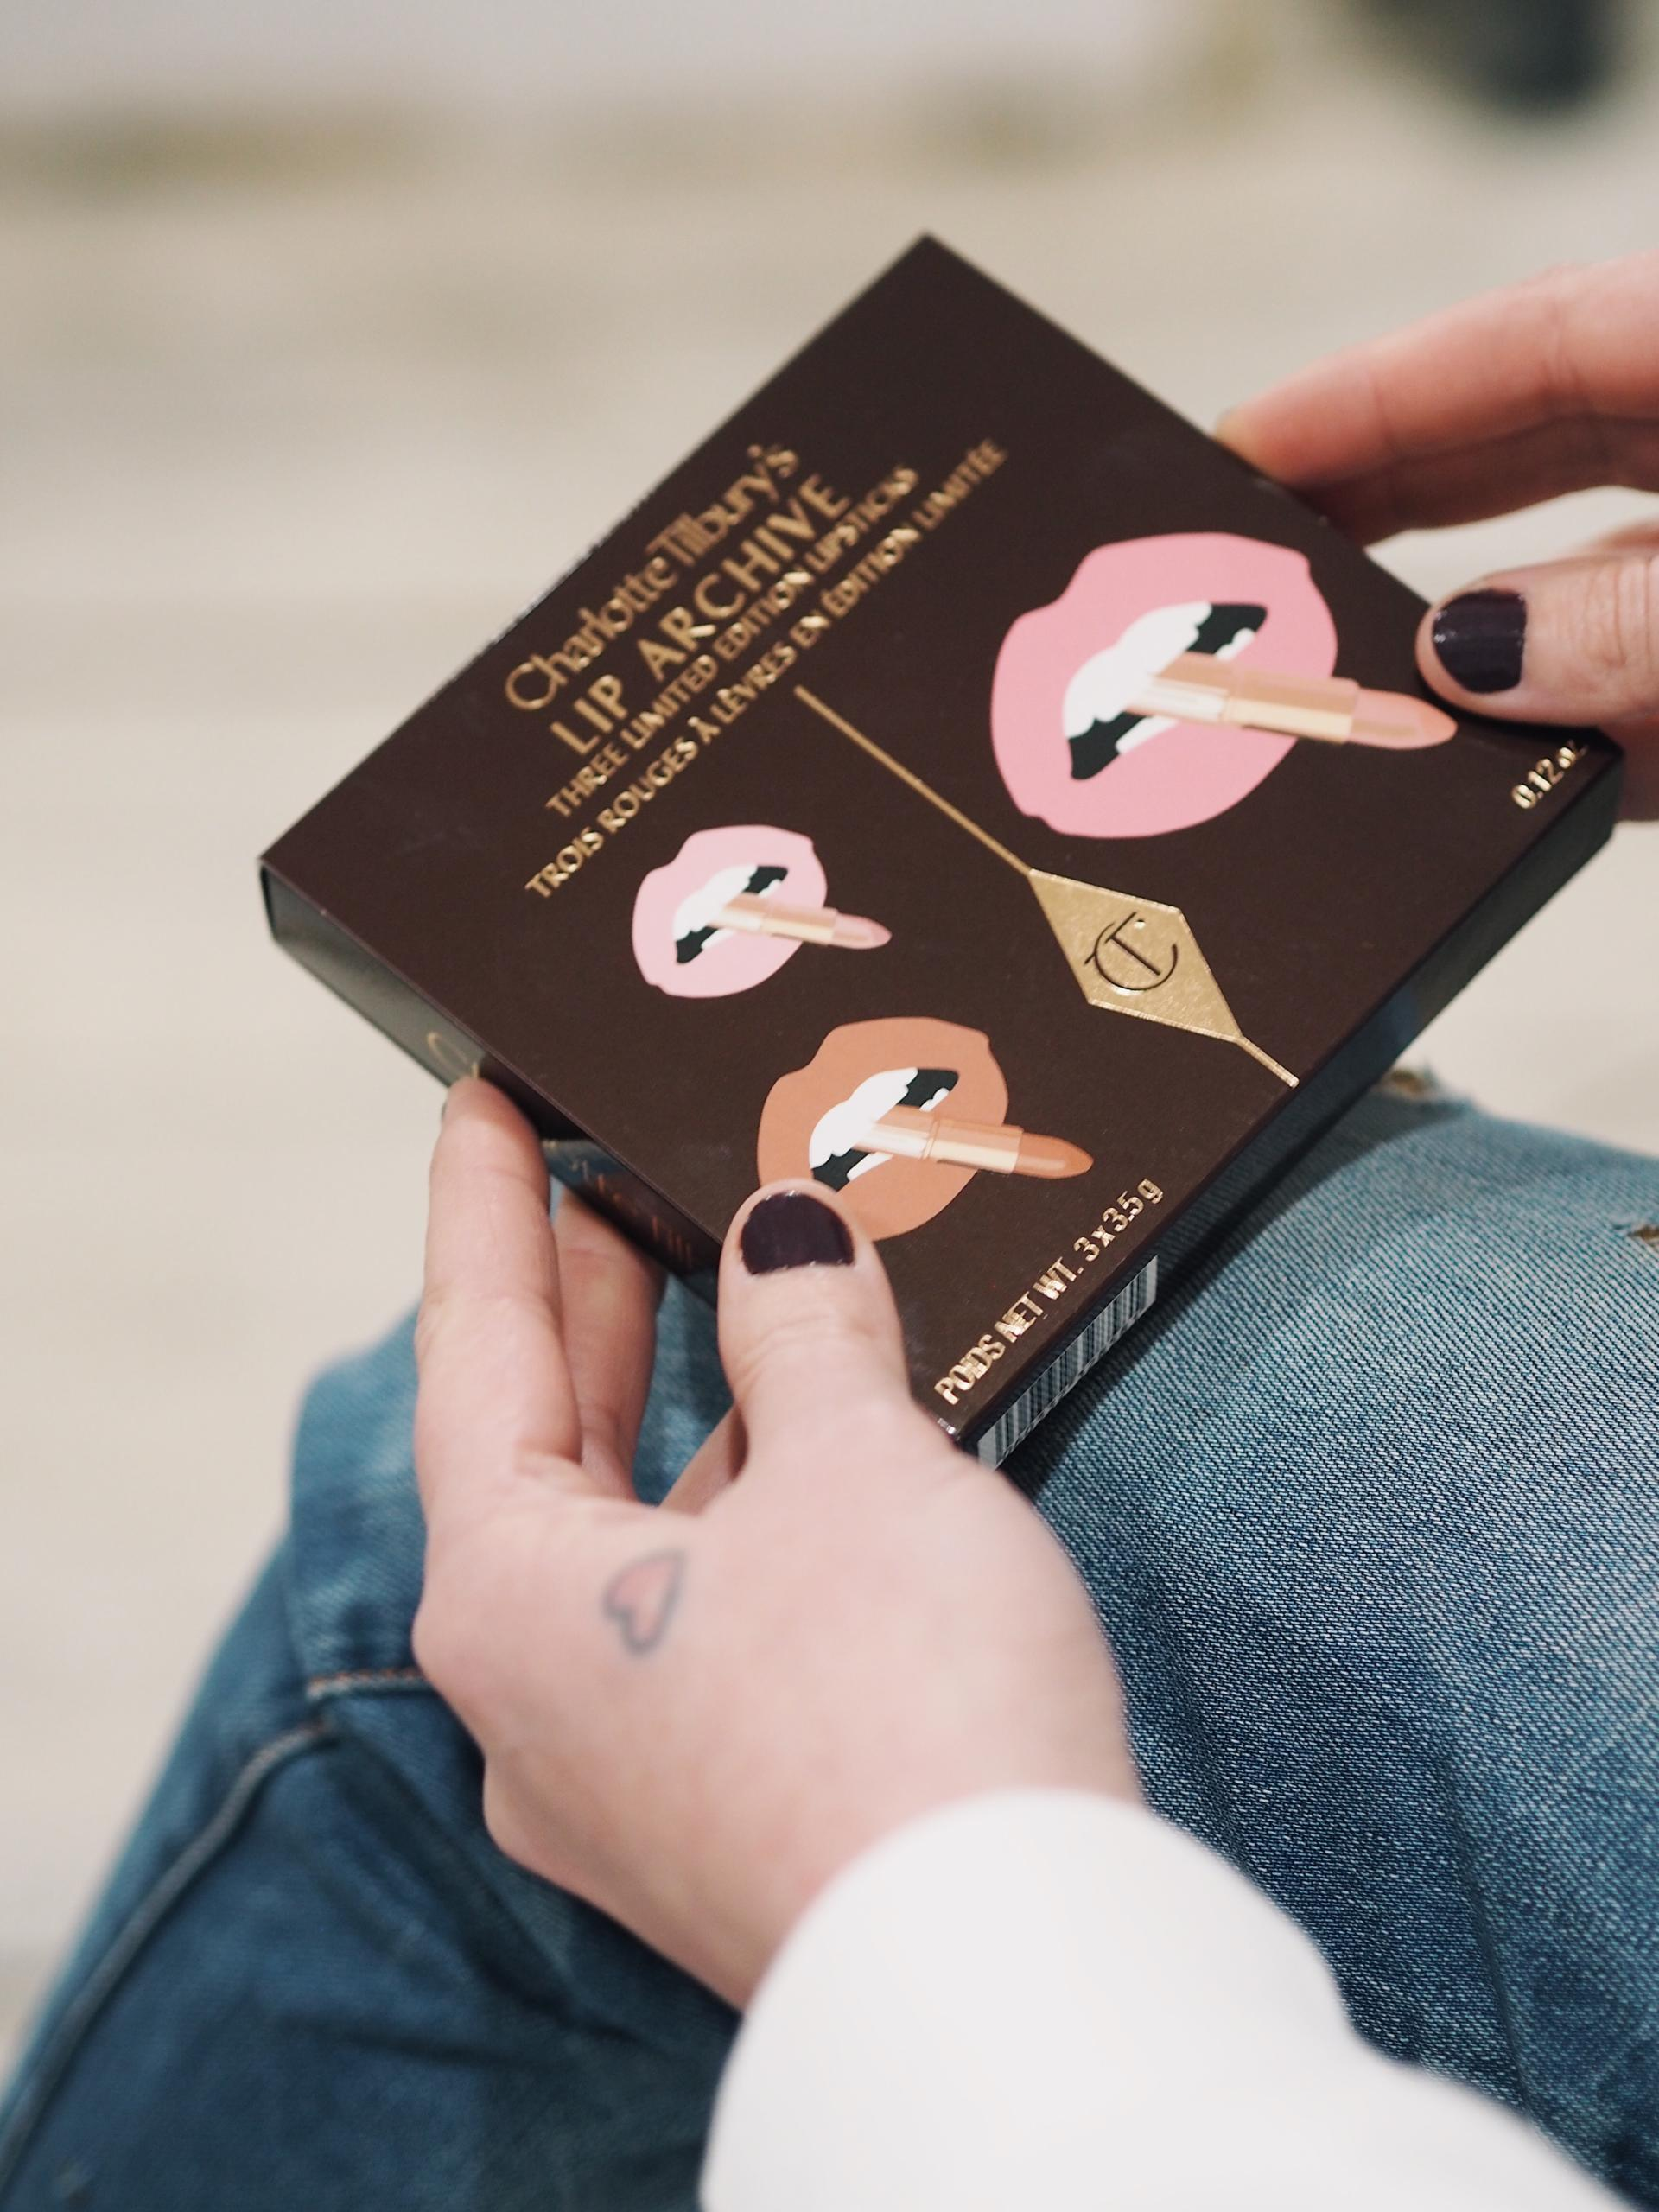 My new relationship with Charlotte Tilbury